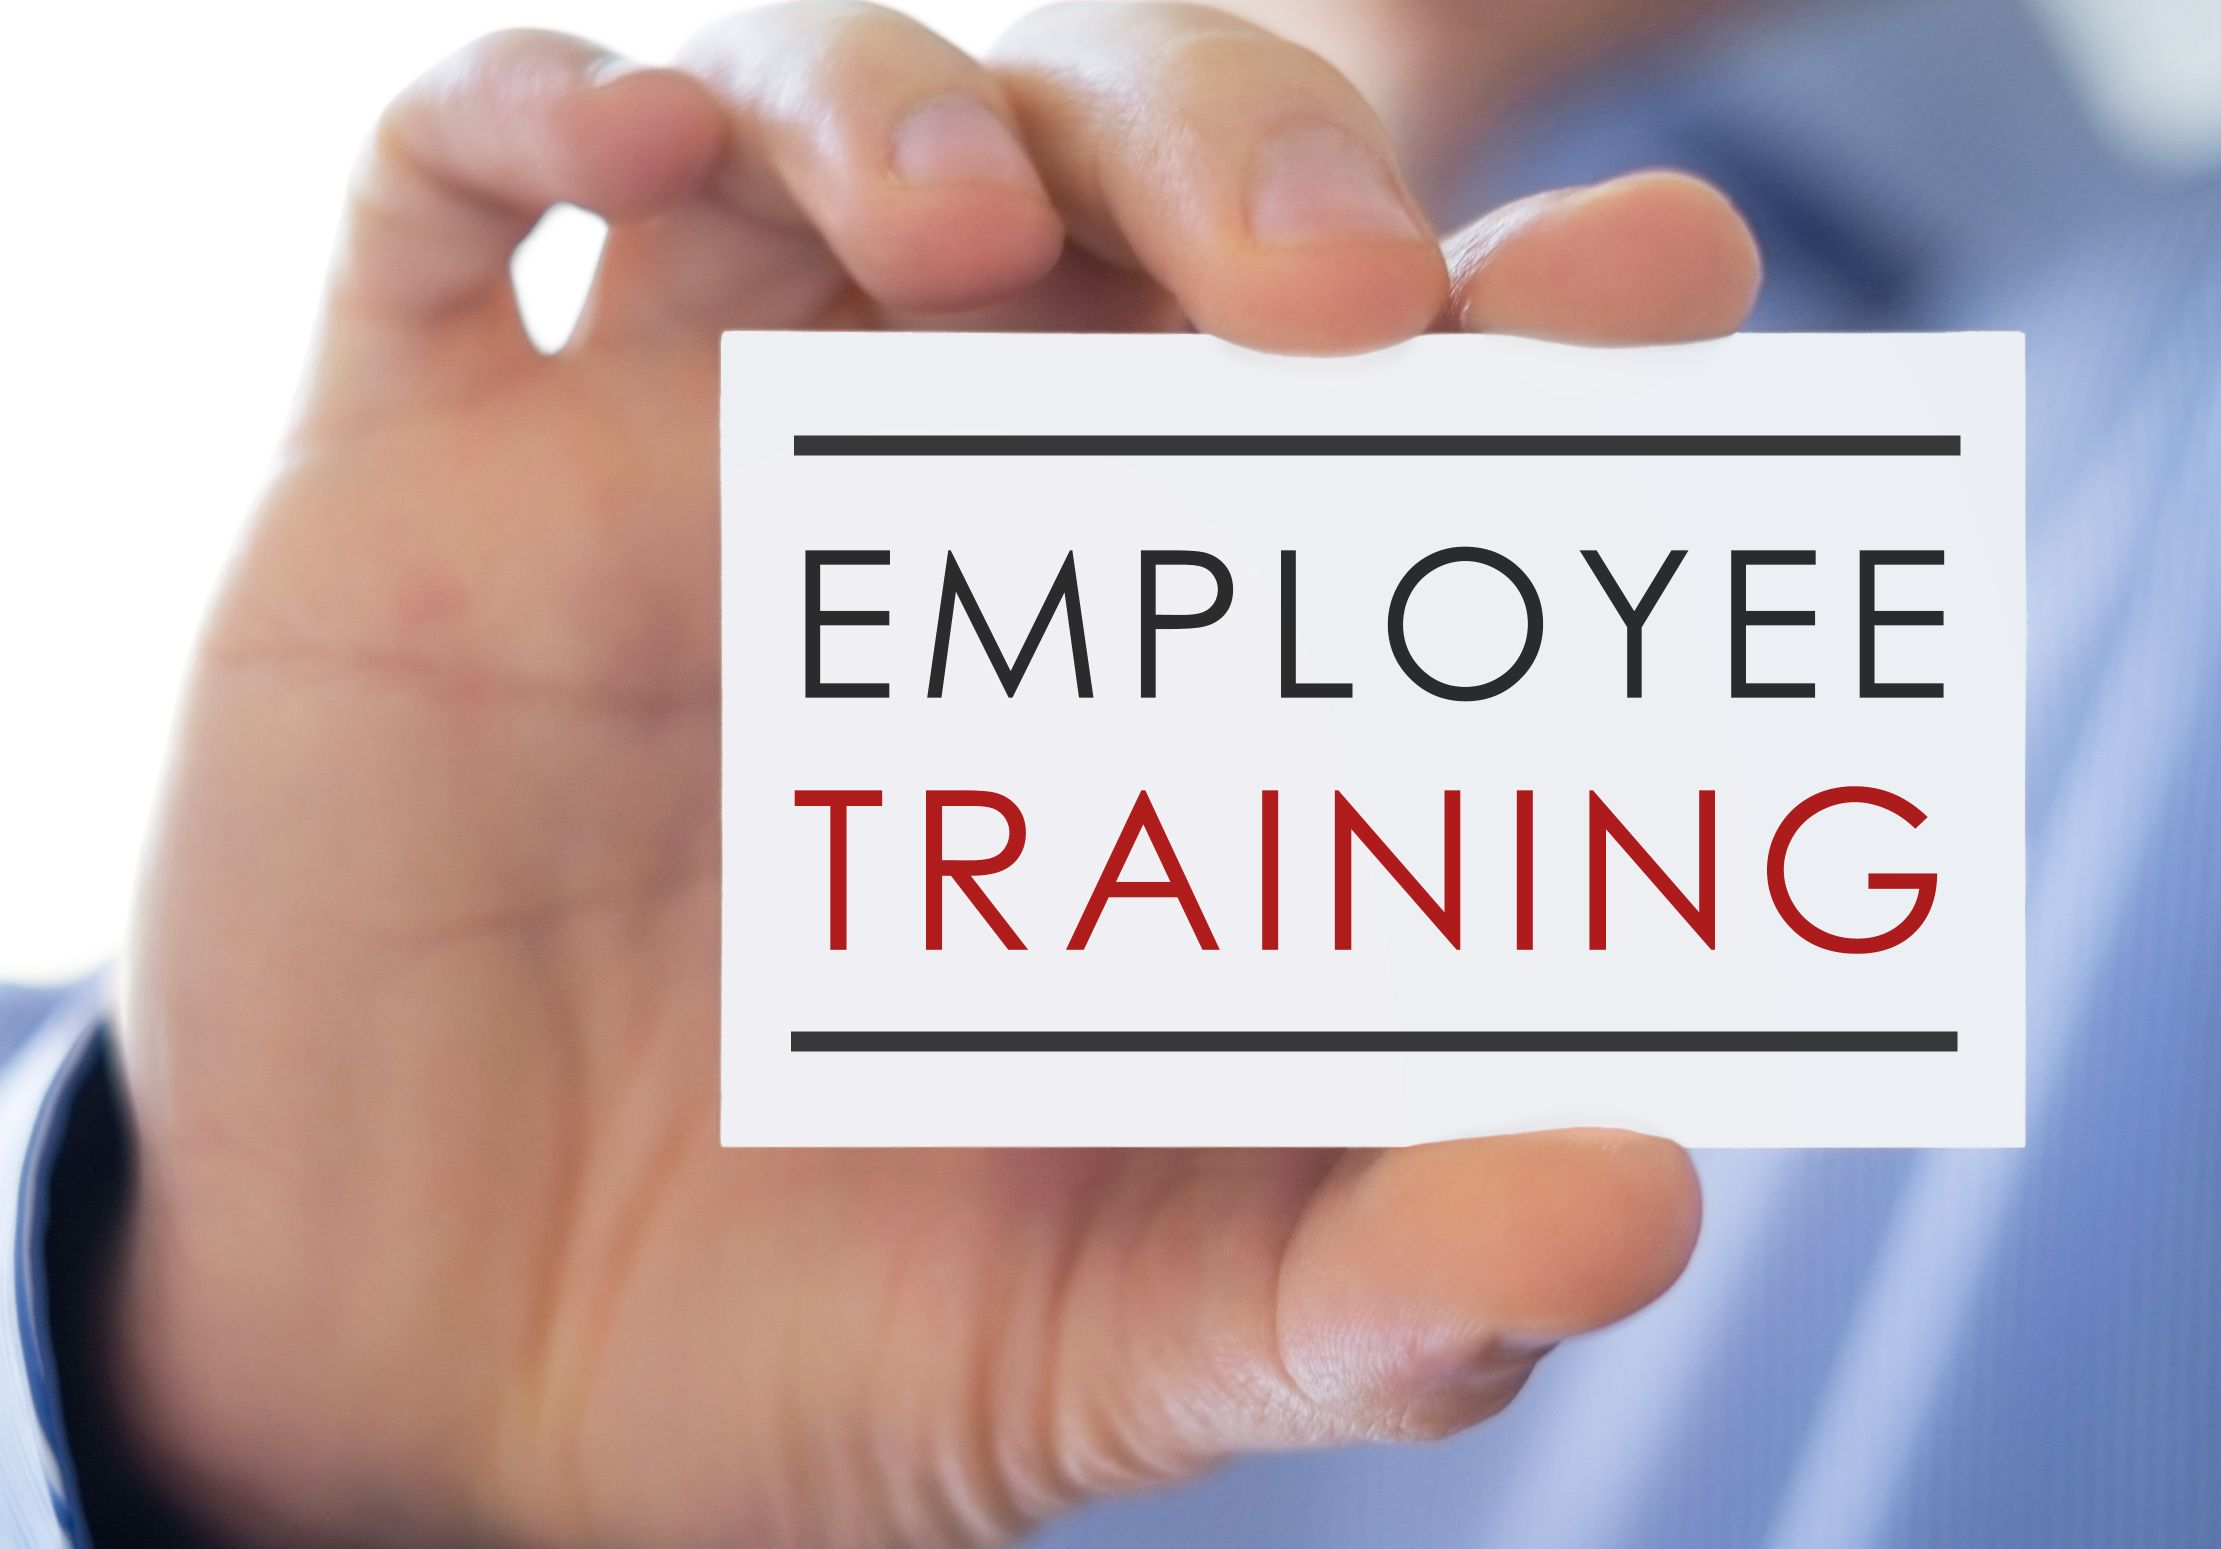 Employment Training